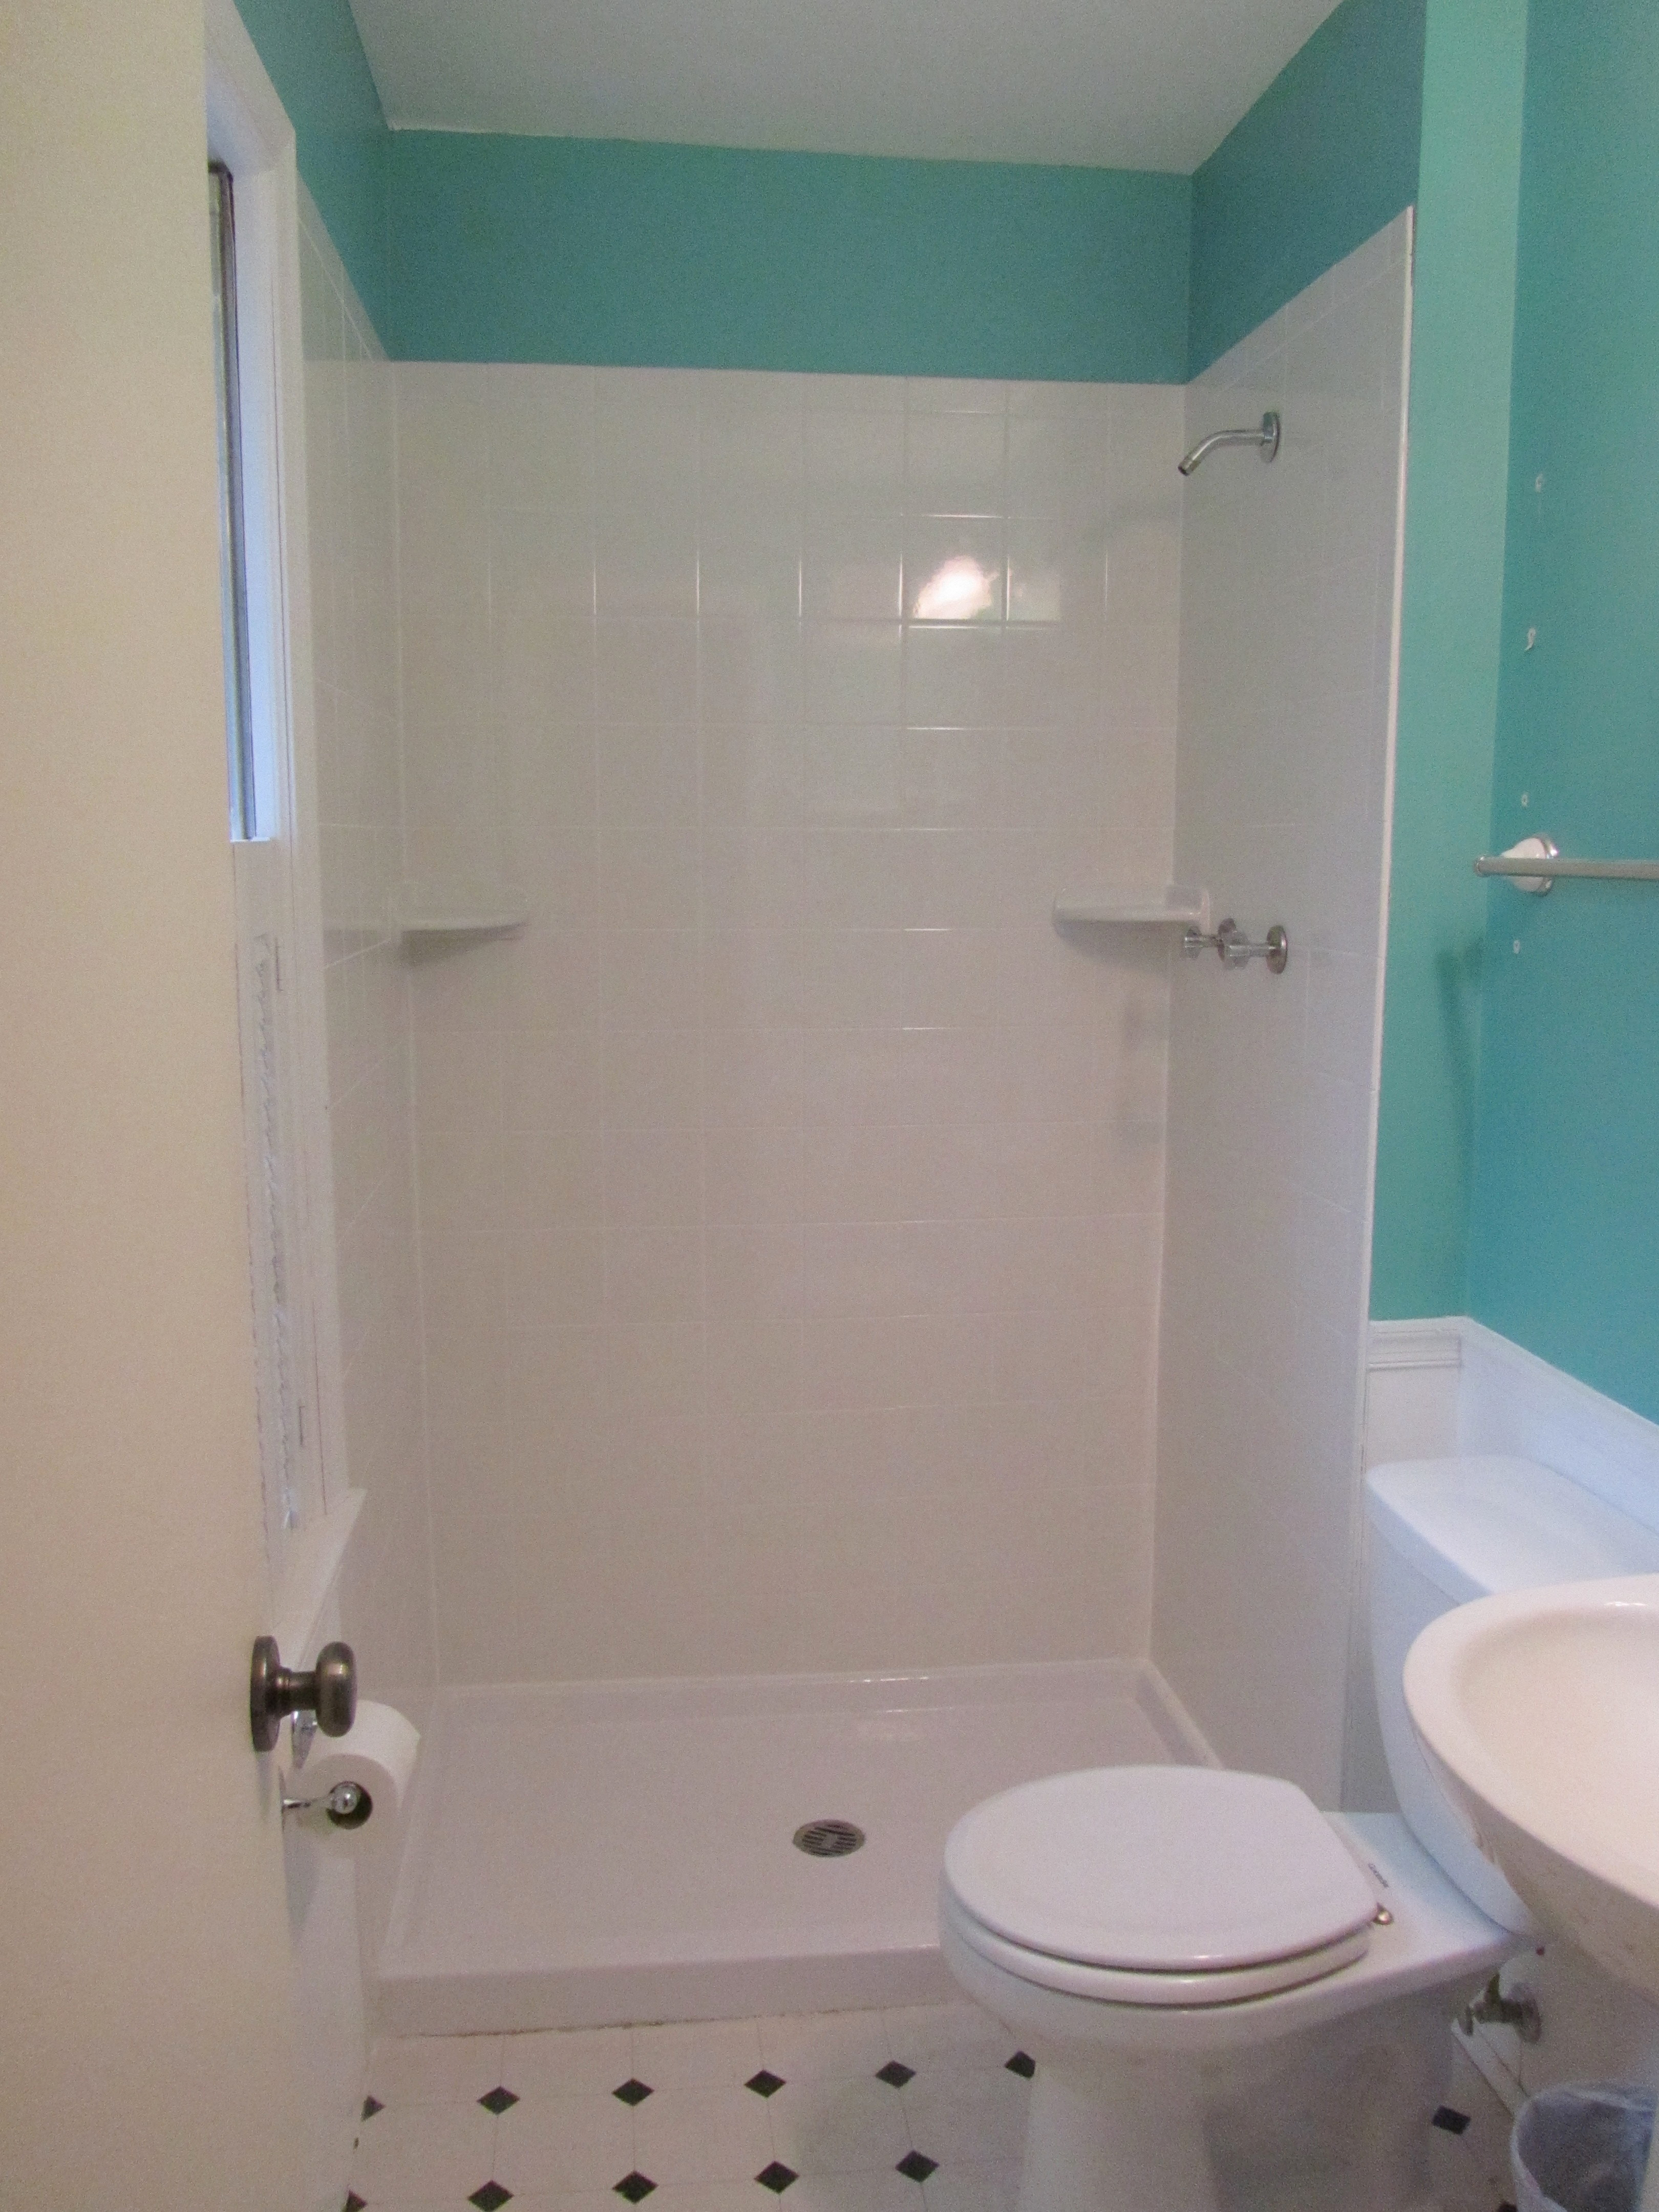 home depot mirror trim with More House Like Thrifty Bathroom Renovation on 411797959649404635 moreover mirrormate furthermore Subway Tile moreover 202022525 additionally 10 Diy Ideas For How To Frame That Basic Bathroom Mirror.